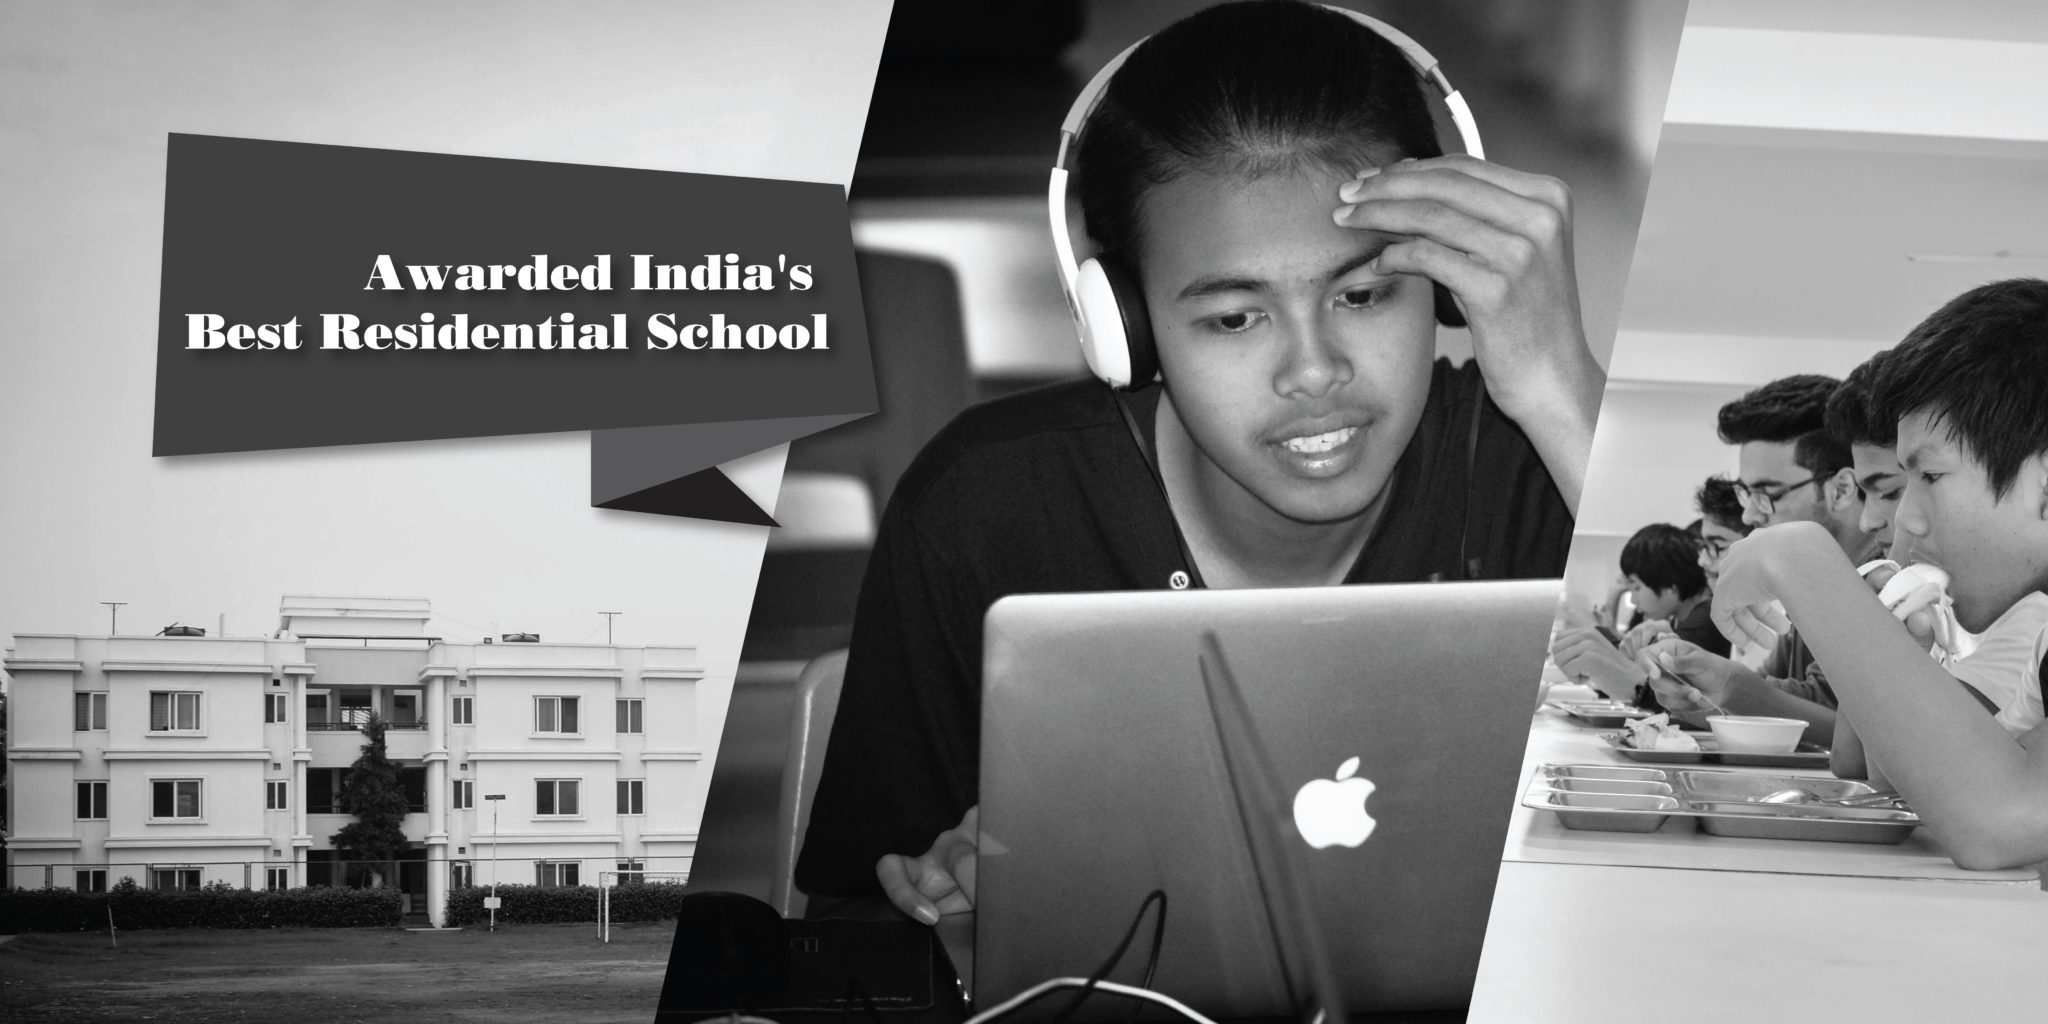 India's Best Residential School